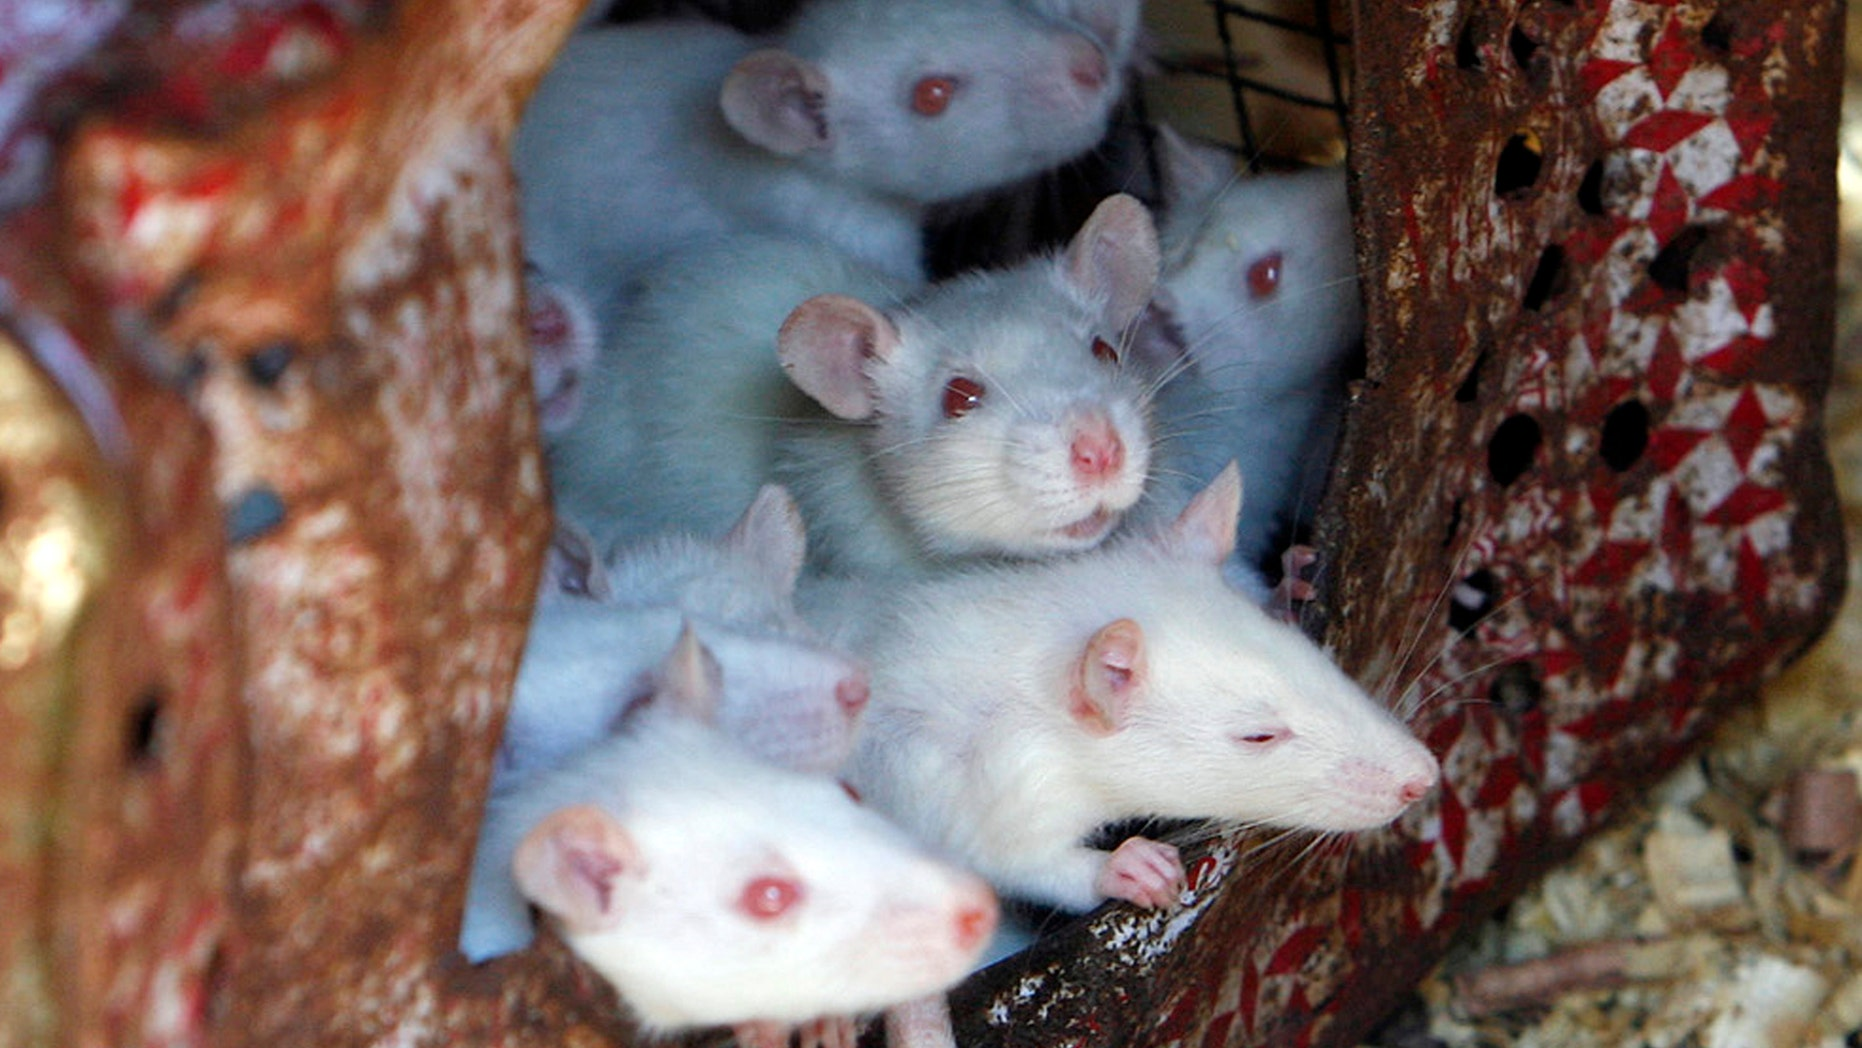 Two new studies reveal the disturbing germs mice in New York City carry.